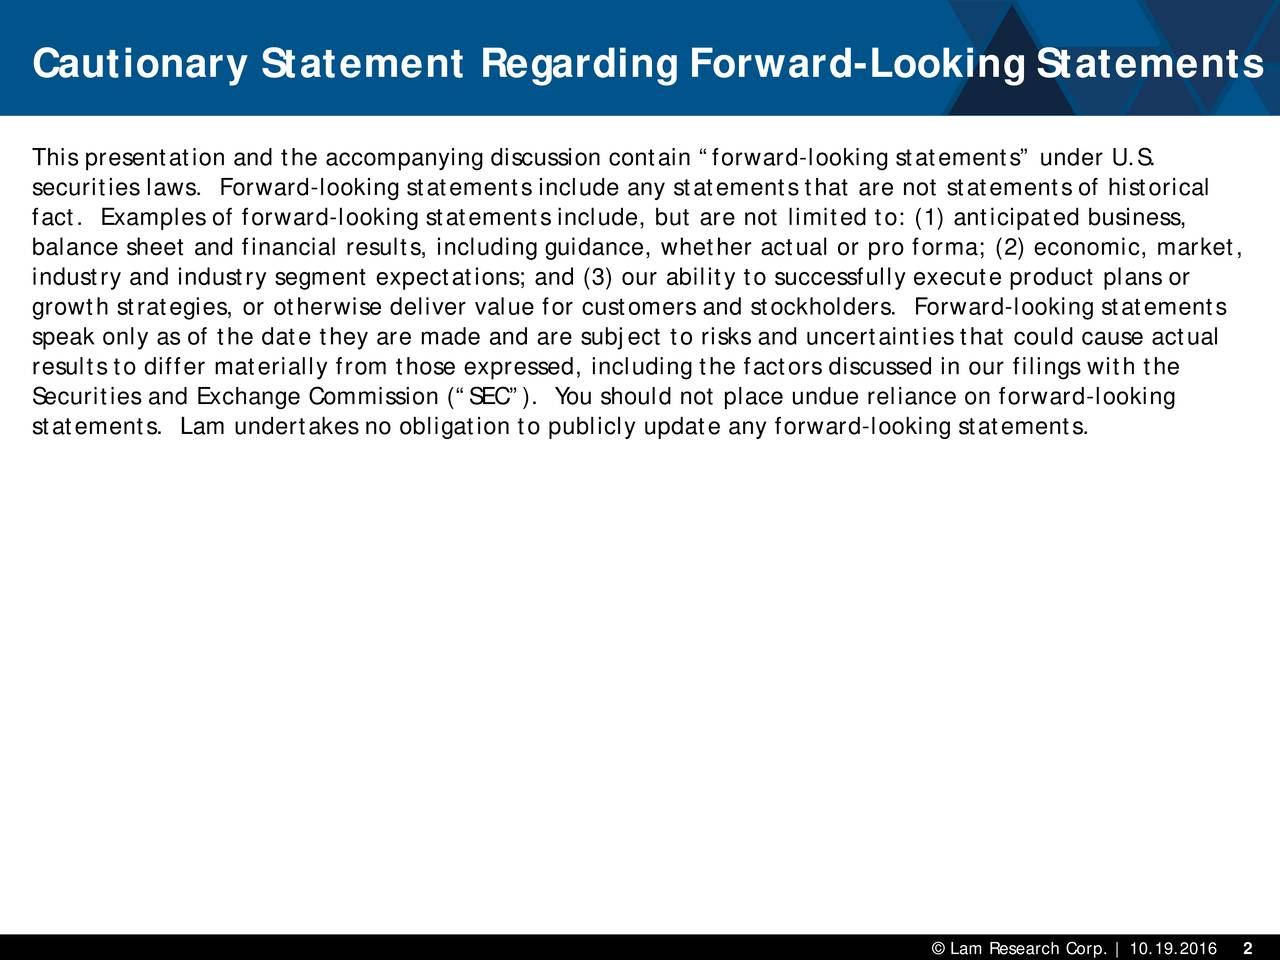 This presentation and the accompanying discussion contain forward -looking statements under U.S. securities laws. Forward-looking statements include any statements that are not statements of historical fact. Examples of forward-looking statements include, but are not limited to: (1) anticipated business, balance sheet and financial results, including guidance, whether actual or pro forma; (2) economic, market, industry and industry segment expectations; and (3) our ability to successfully execute product plans or growth strategies, or otherwise deliver value for customers and stockholders. Forward -looking statements speak only as of the date they are made and are subject to risks and uncertainties that could cause actual results to differ materially from those expressed, including the factors discussed in our filings with the Securities and Exchange Commission (SEC). You should not place undue reliance on forward-looking statements. Lam undertakes no obligation to publicly update any forward -looking statements.